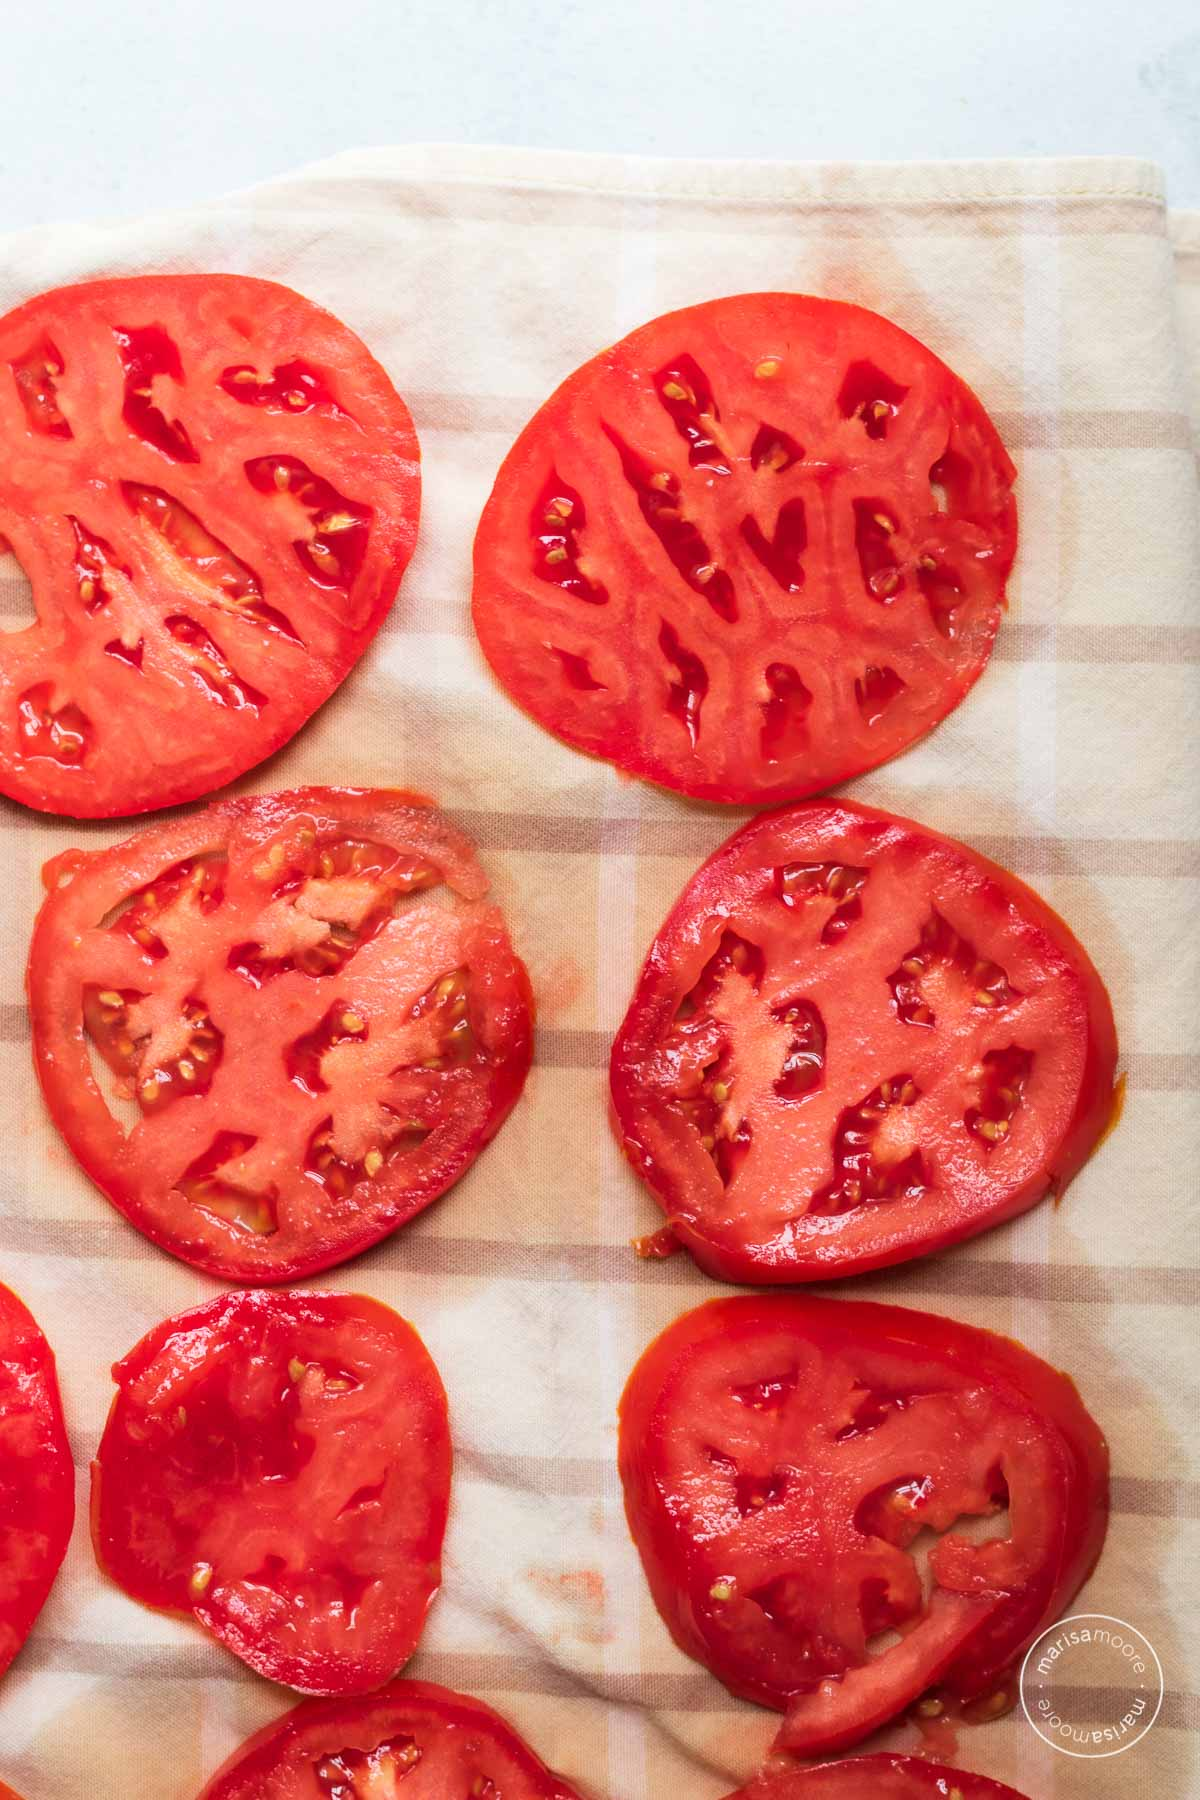 Red tomato slices on a cloth napkin draining